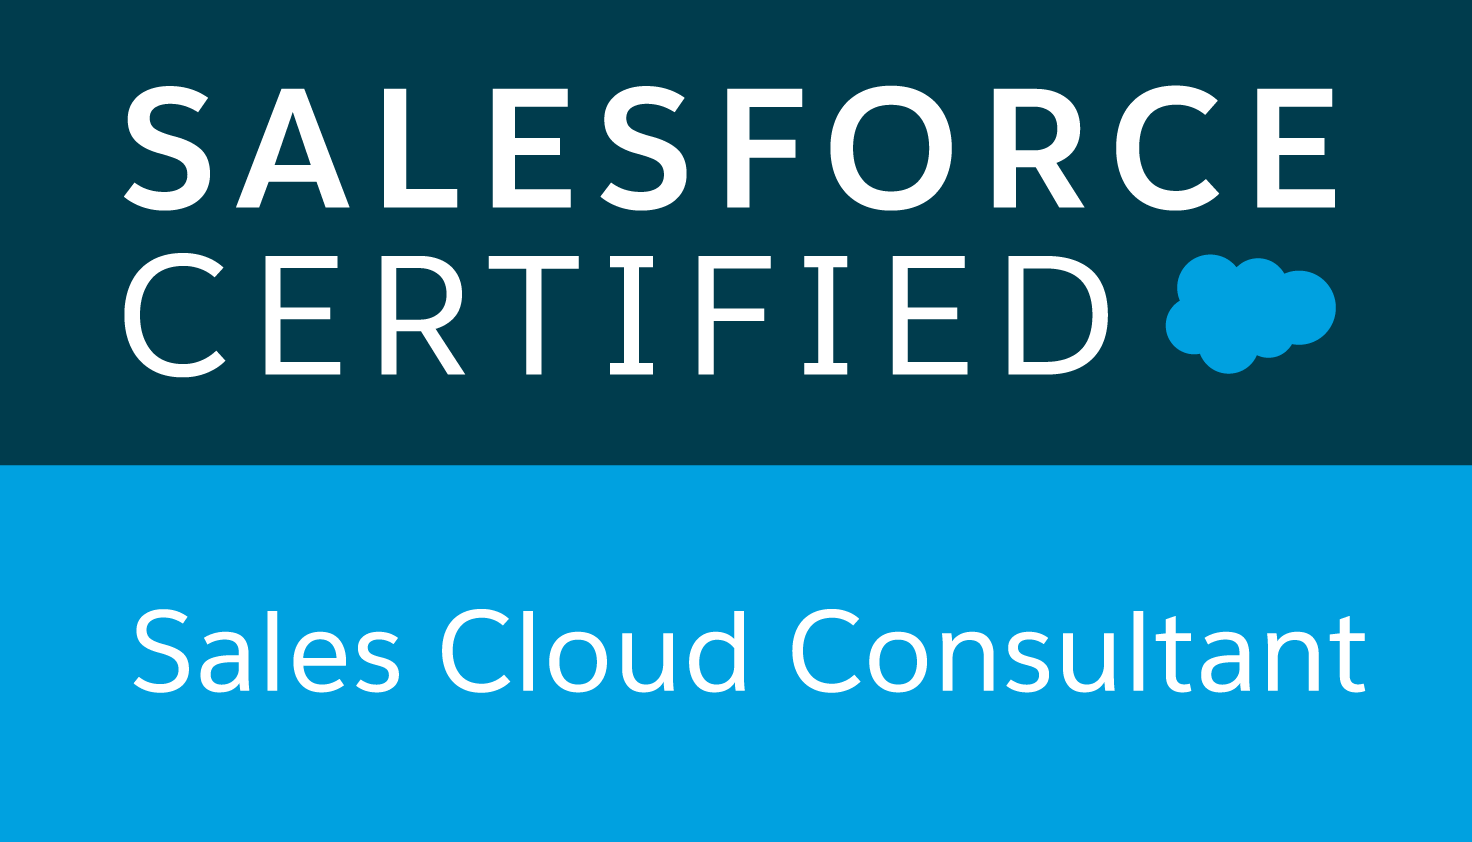 Sales Cloud Consultant